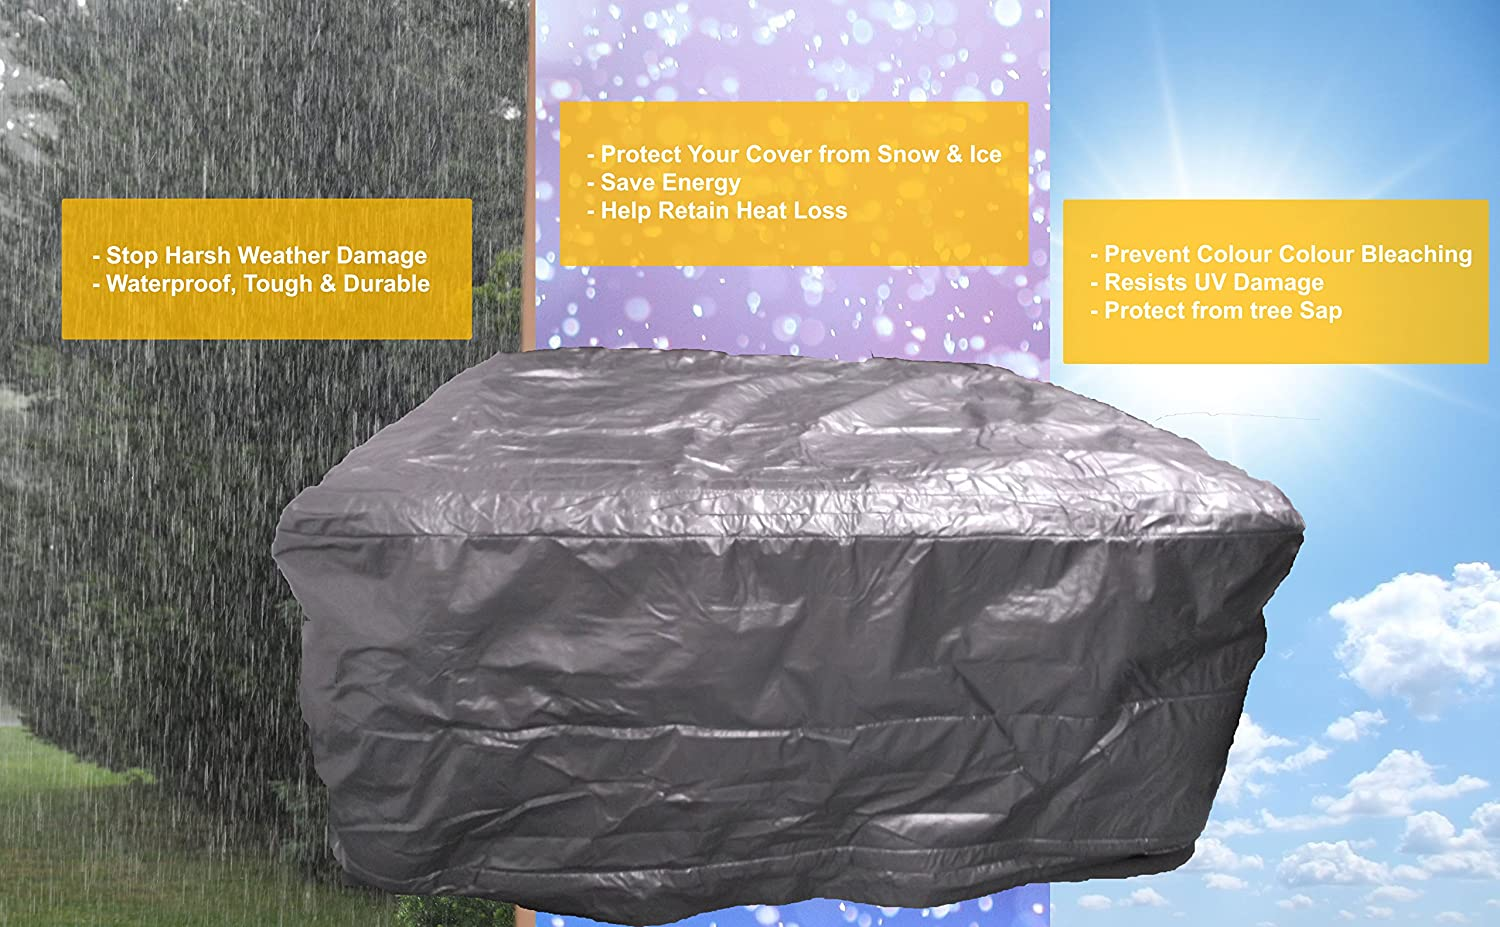 Hot Tub protection Bag, Winter Weather Proof Spa Cover (1740 x 1740 x 920)